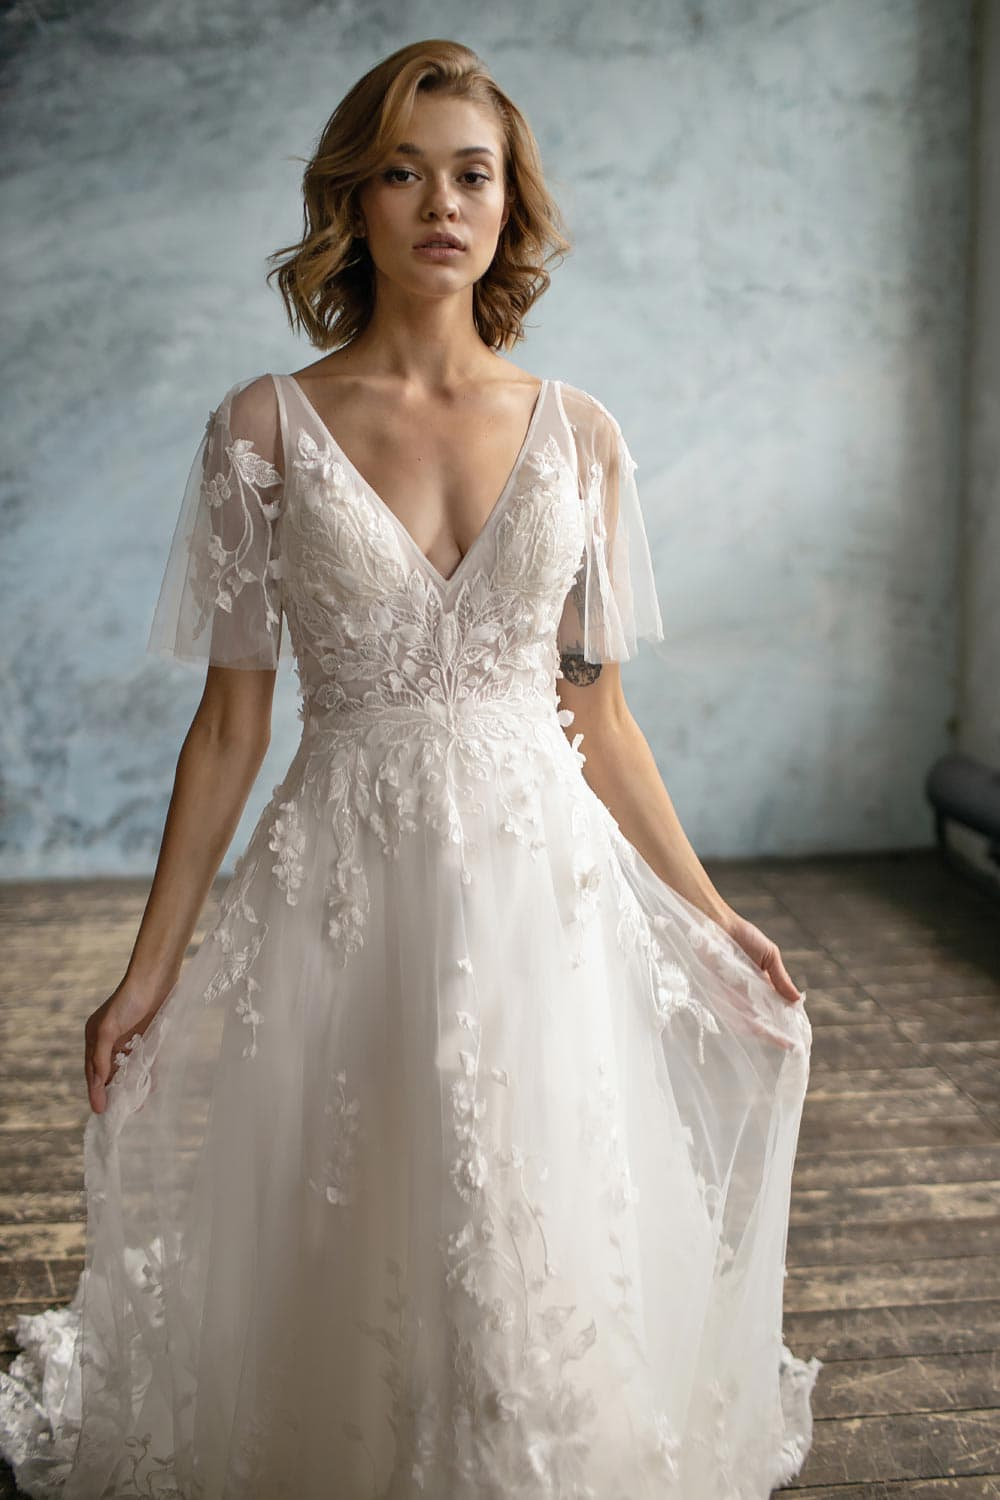 bridal shop near me wedding dress shop near me wedding dress near me wedding dress with sleeves 5